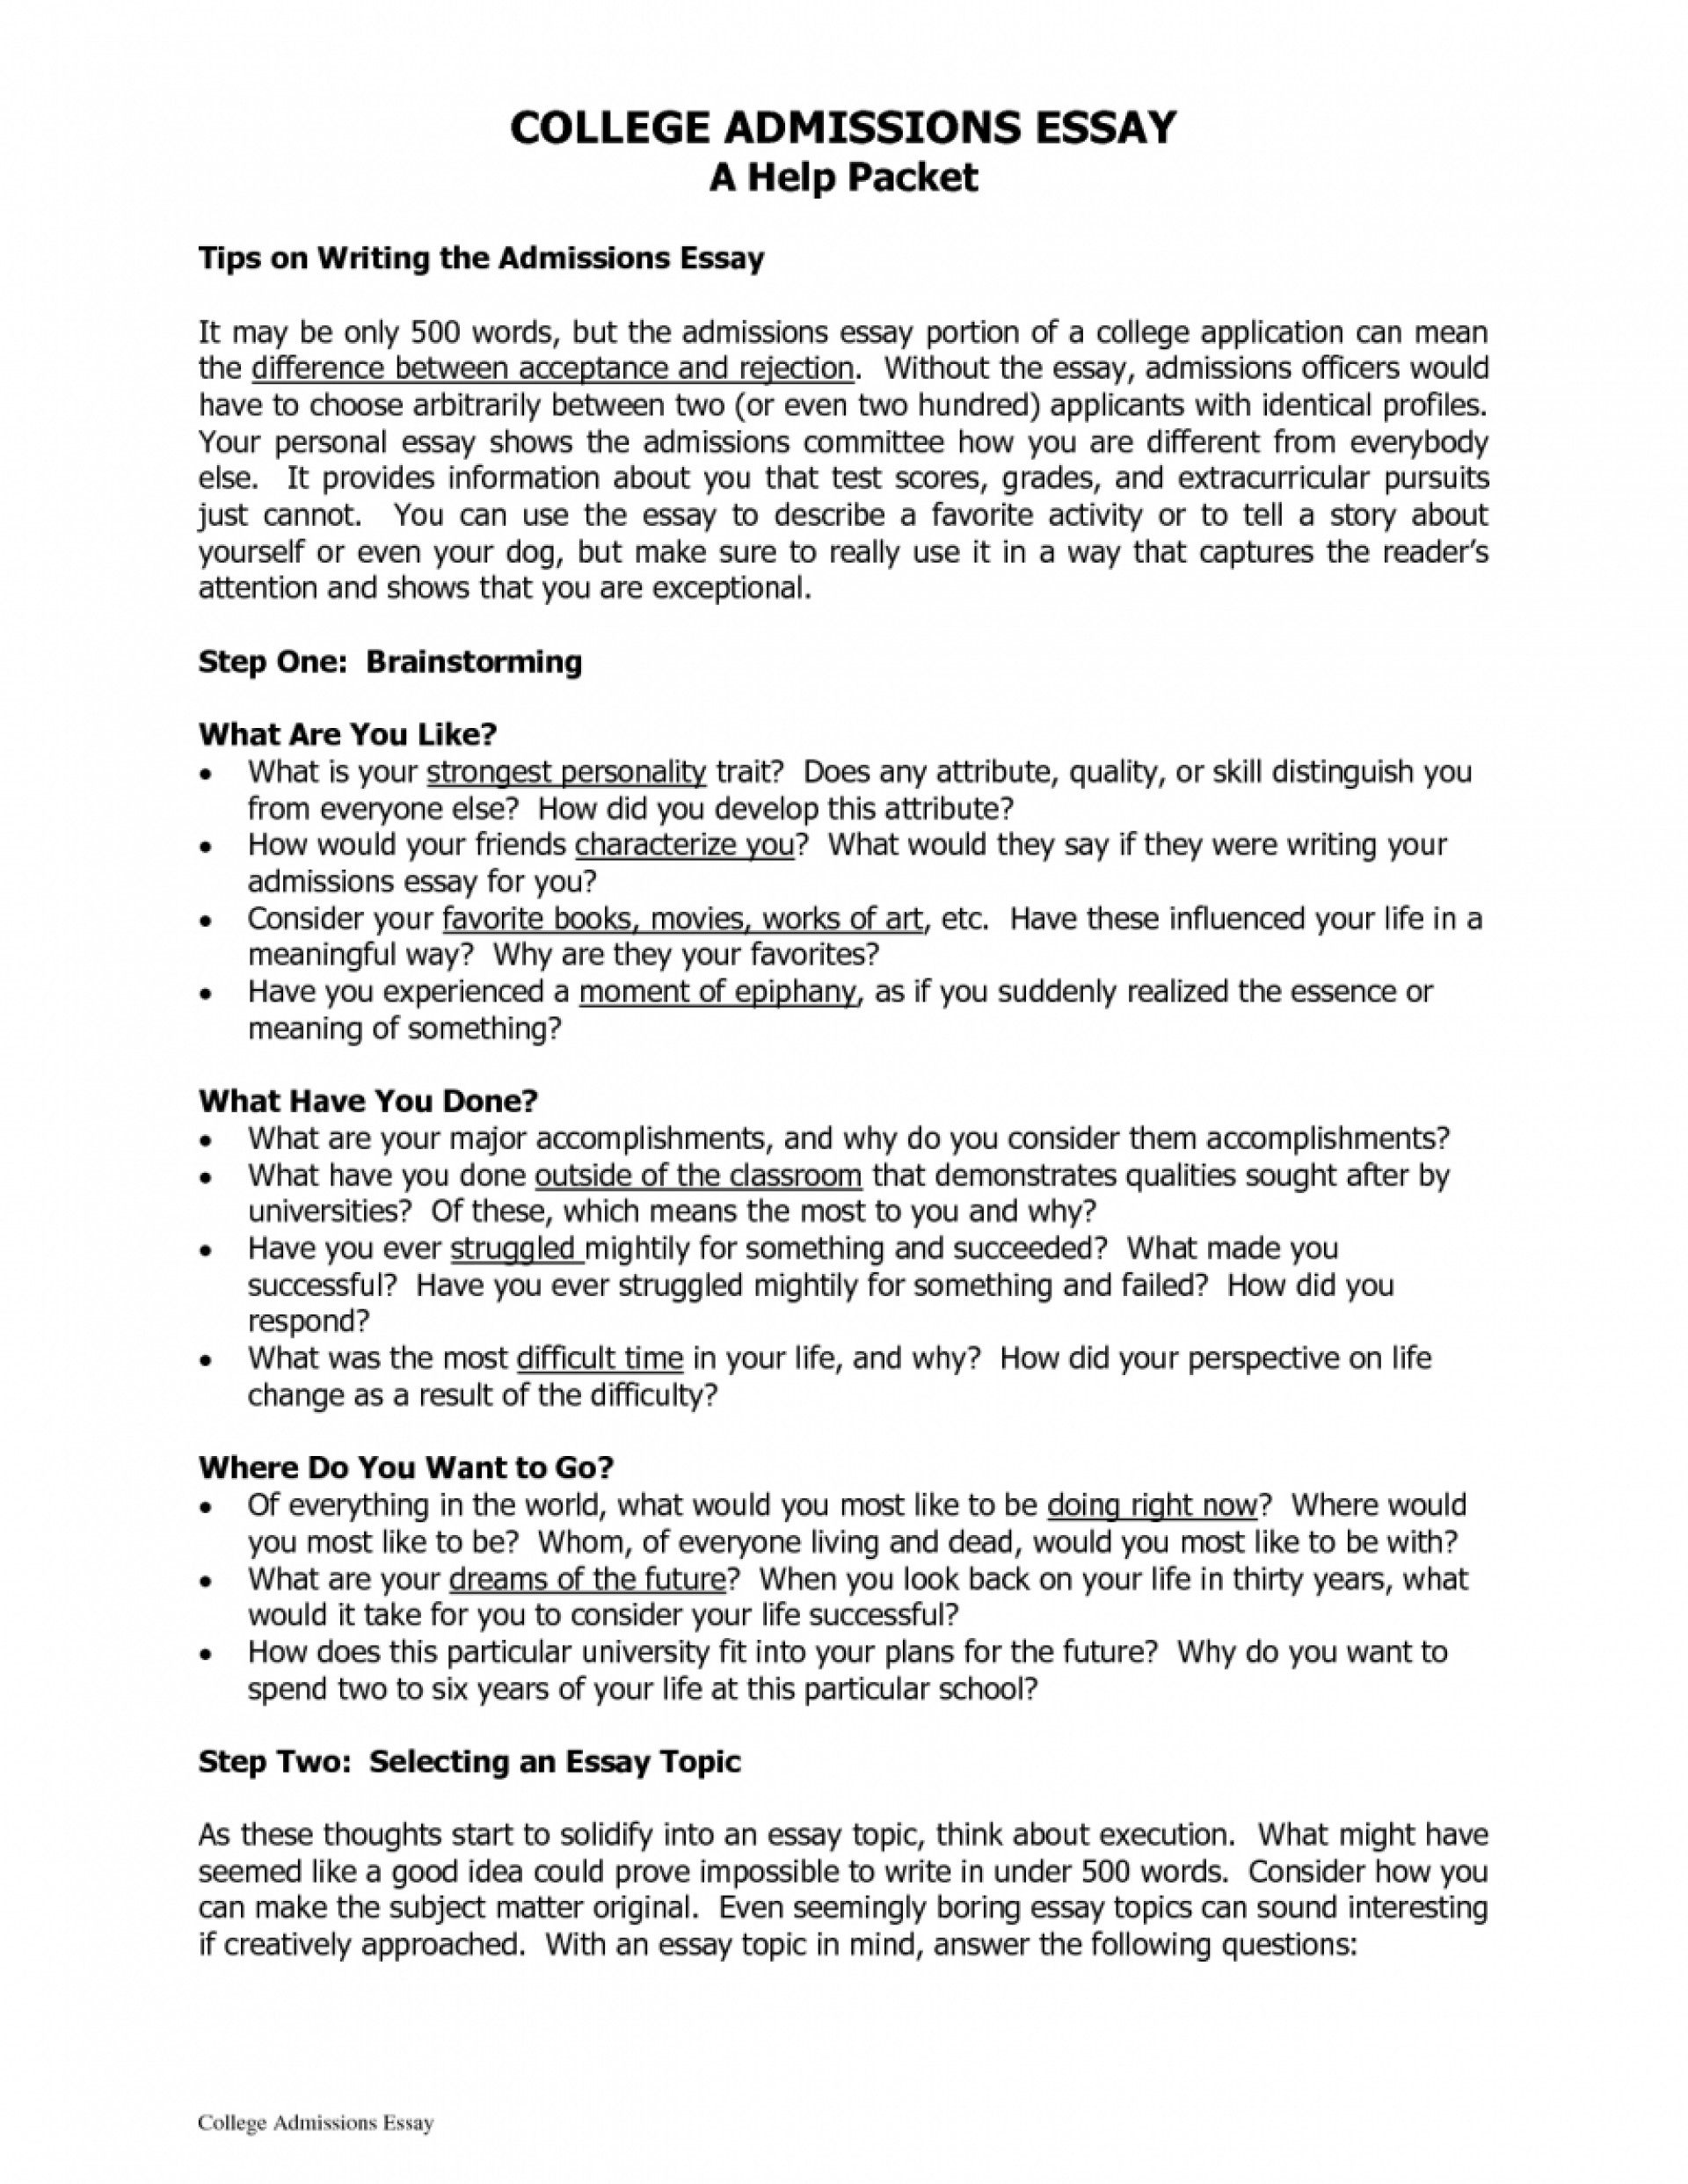 003 College Entry Essay Cover Letter Example Of Personal For Application Good Statement Applications Sa What Makes Best How To Write Examples Essays Amazing Admissions About Autism Tips Admission Ivy League 1920